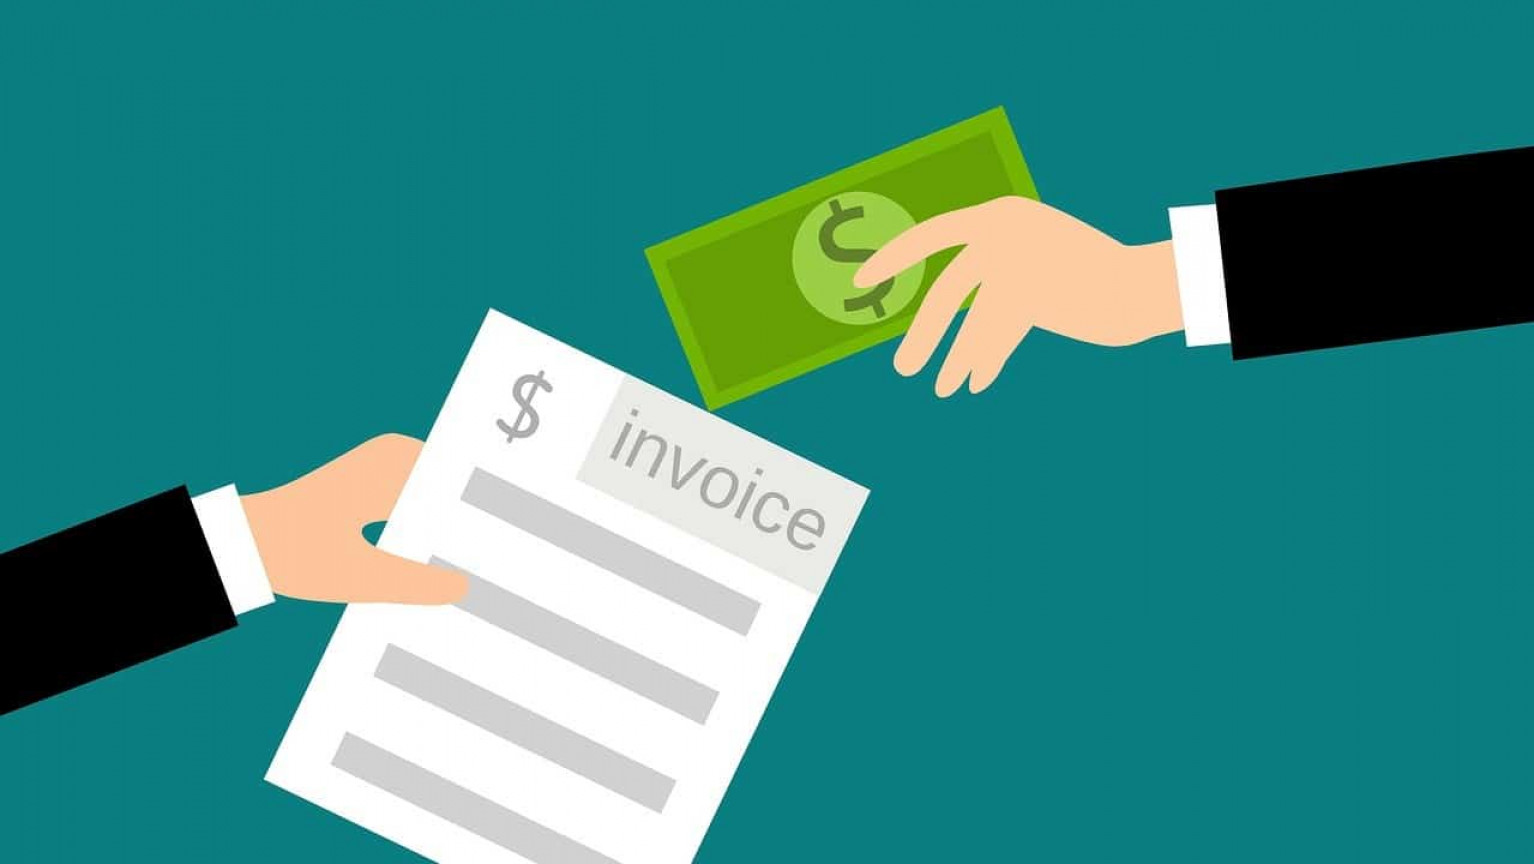 Trading an invoice